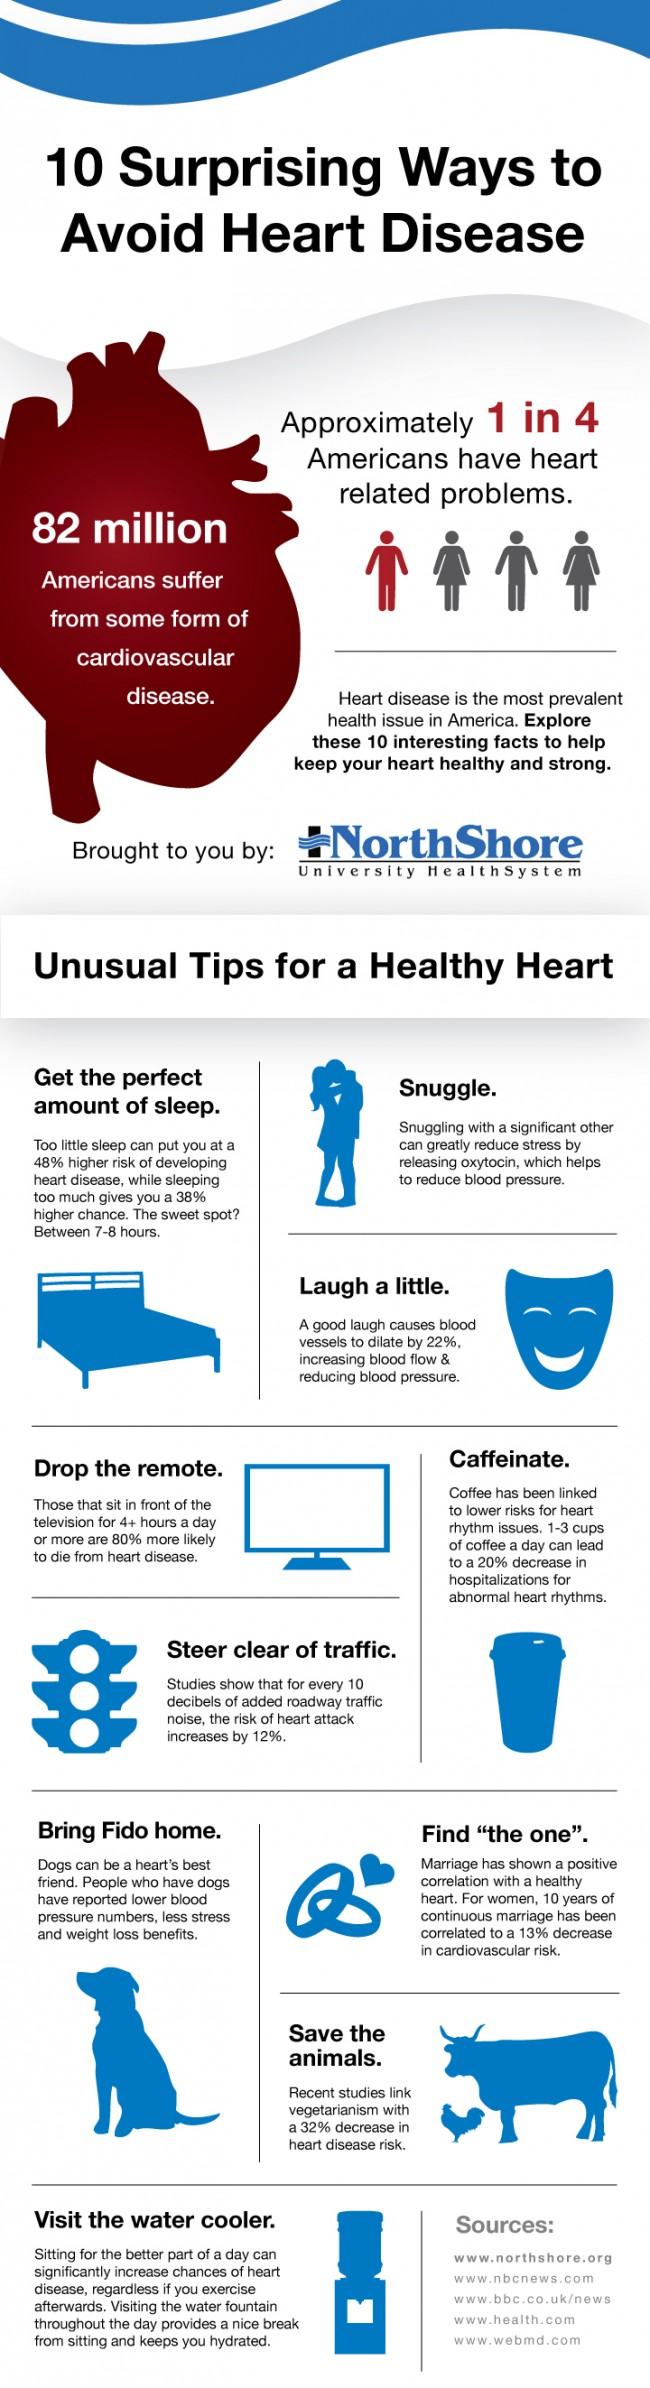 NSHS Infographic 650x2388 Prevent Heart Disease With These Surprising Heart Healthy Tips